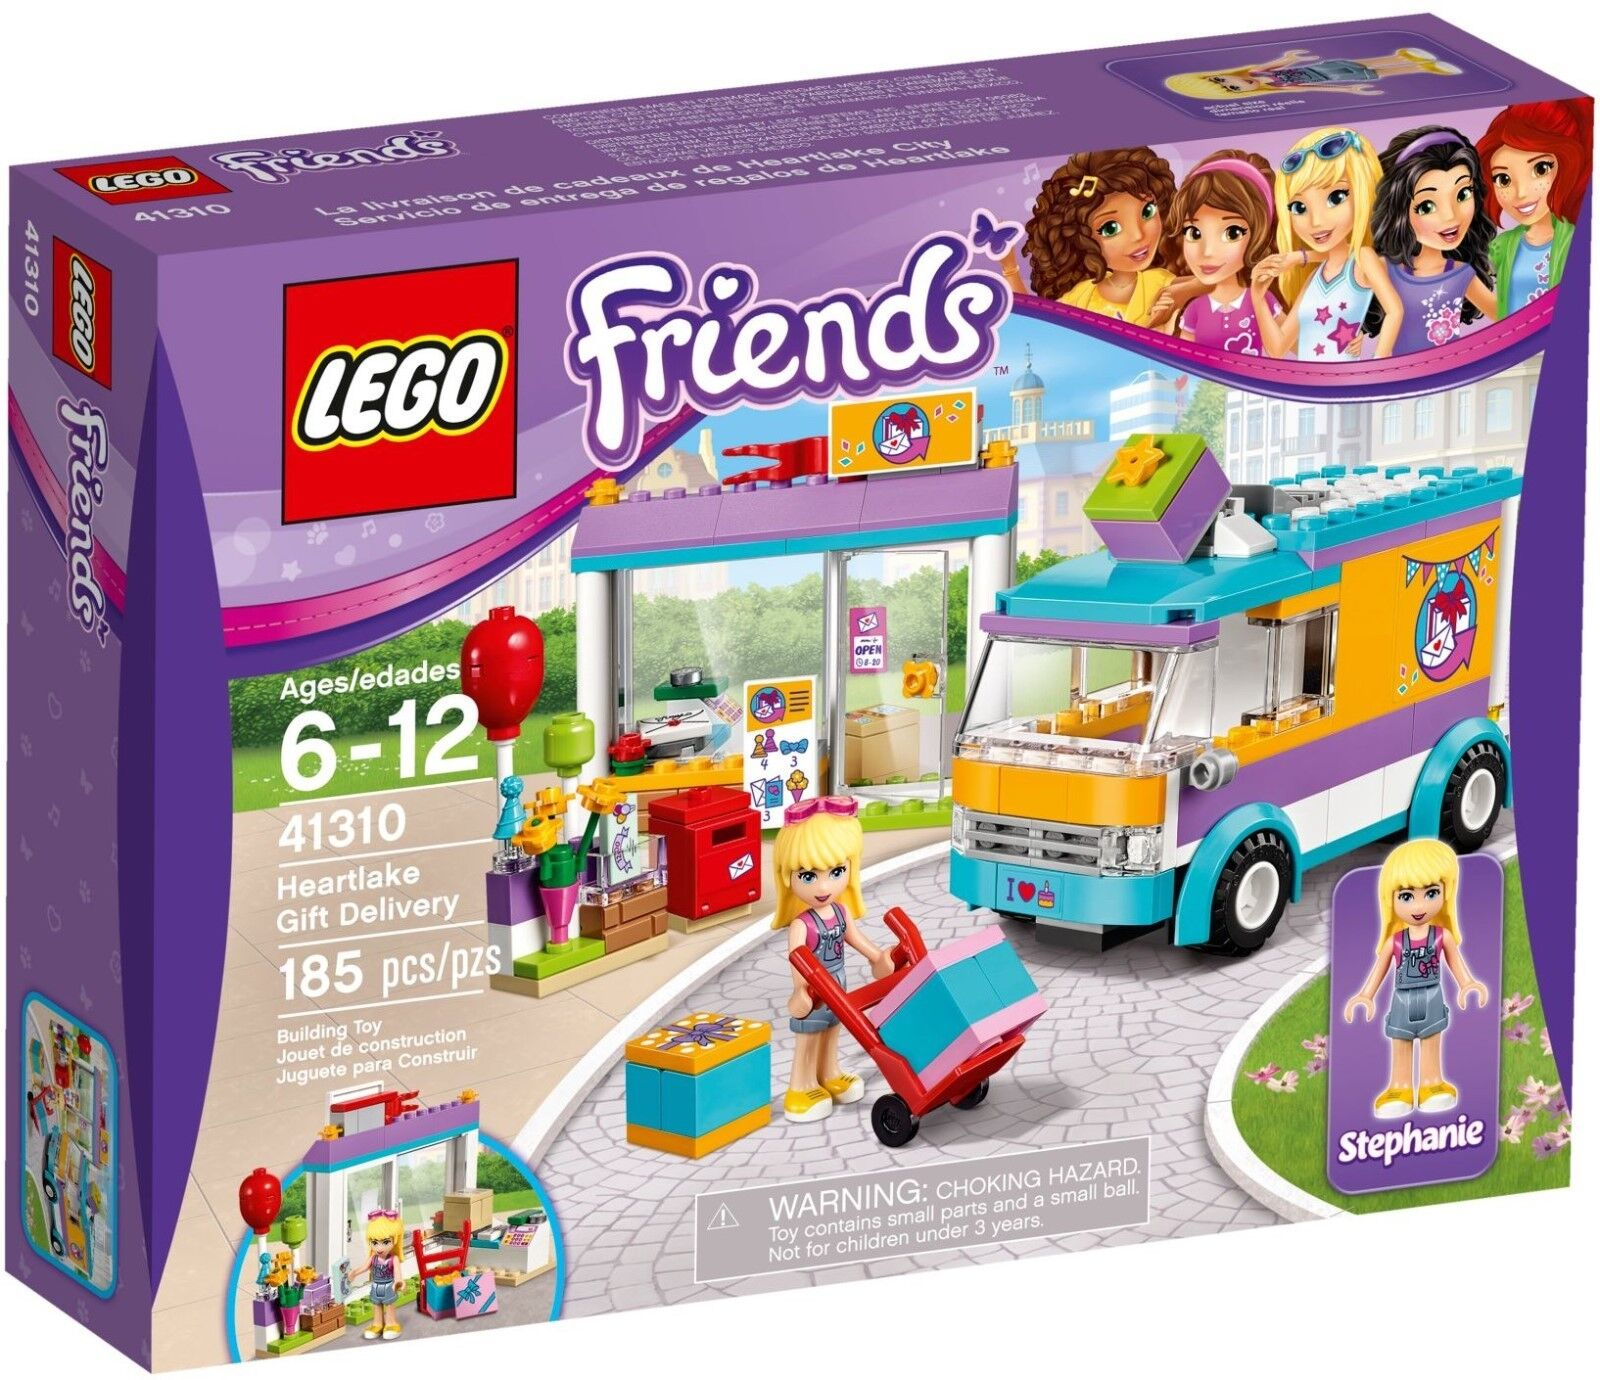 LEGO Friends Heartlake Gift Delivery 41310 - Brand New